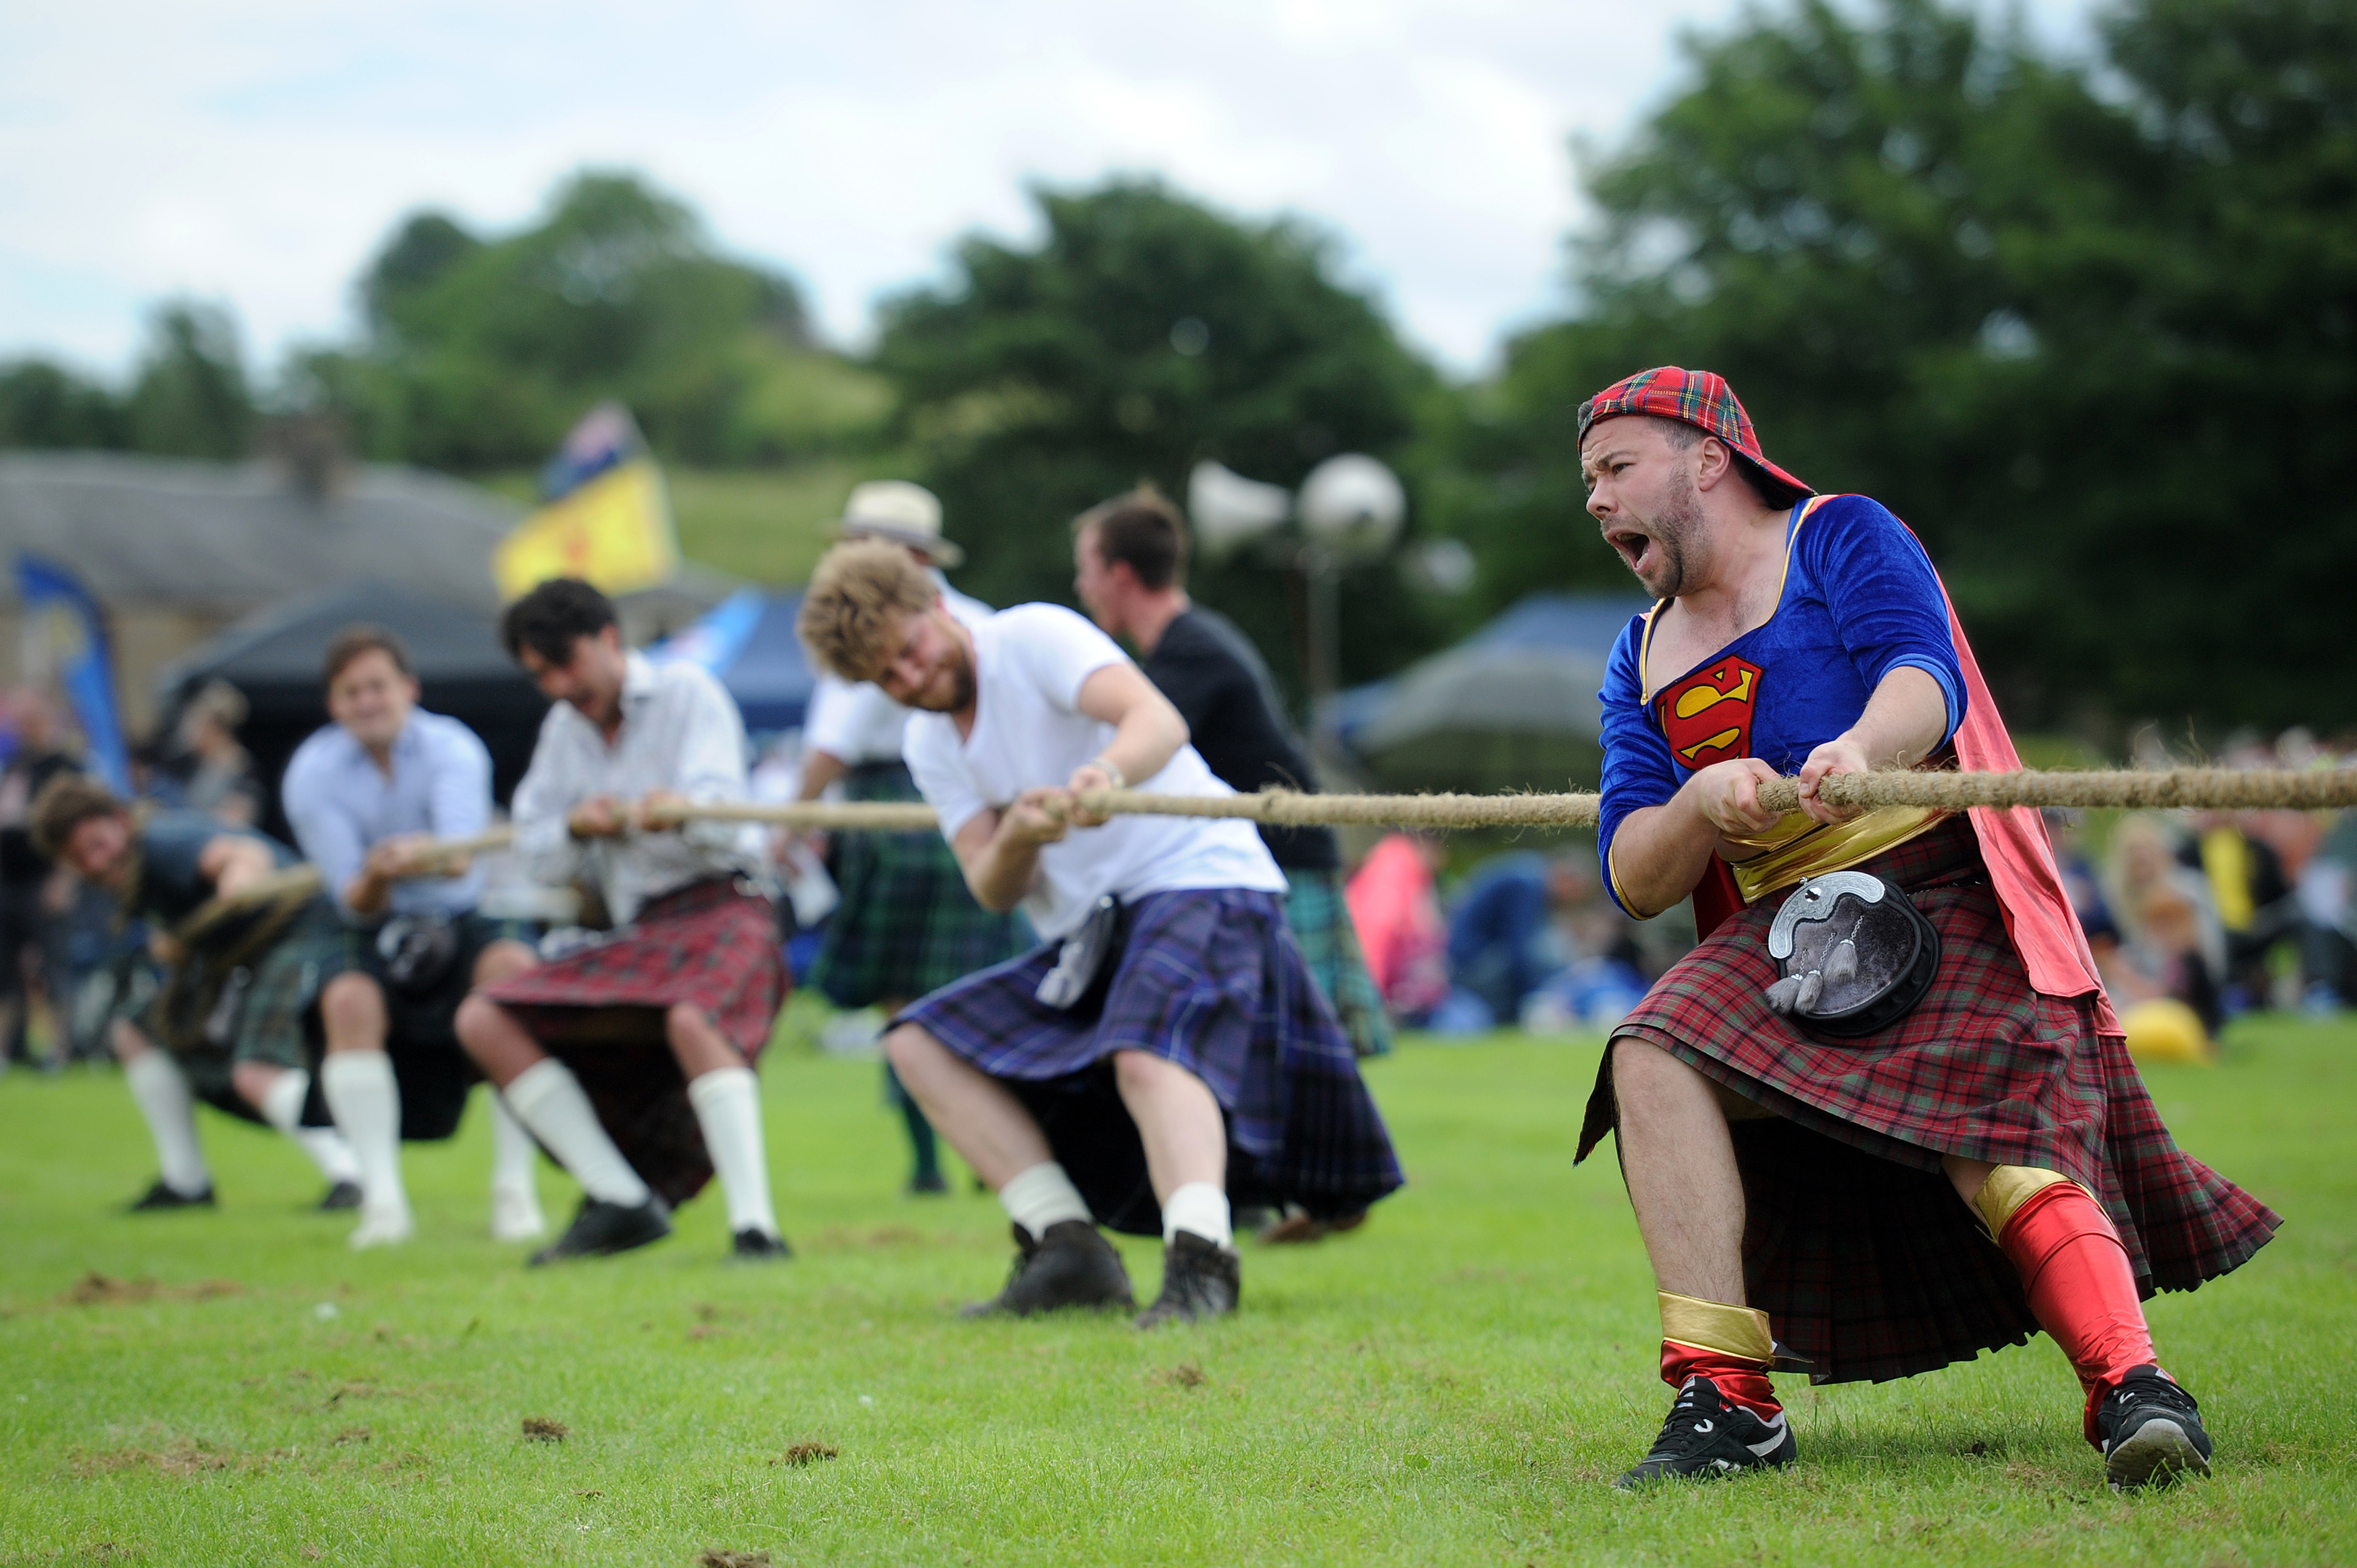 Competitors get into the spirit of the Tug O'War